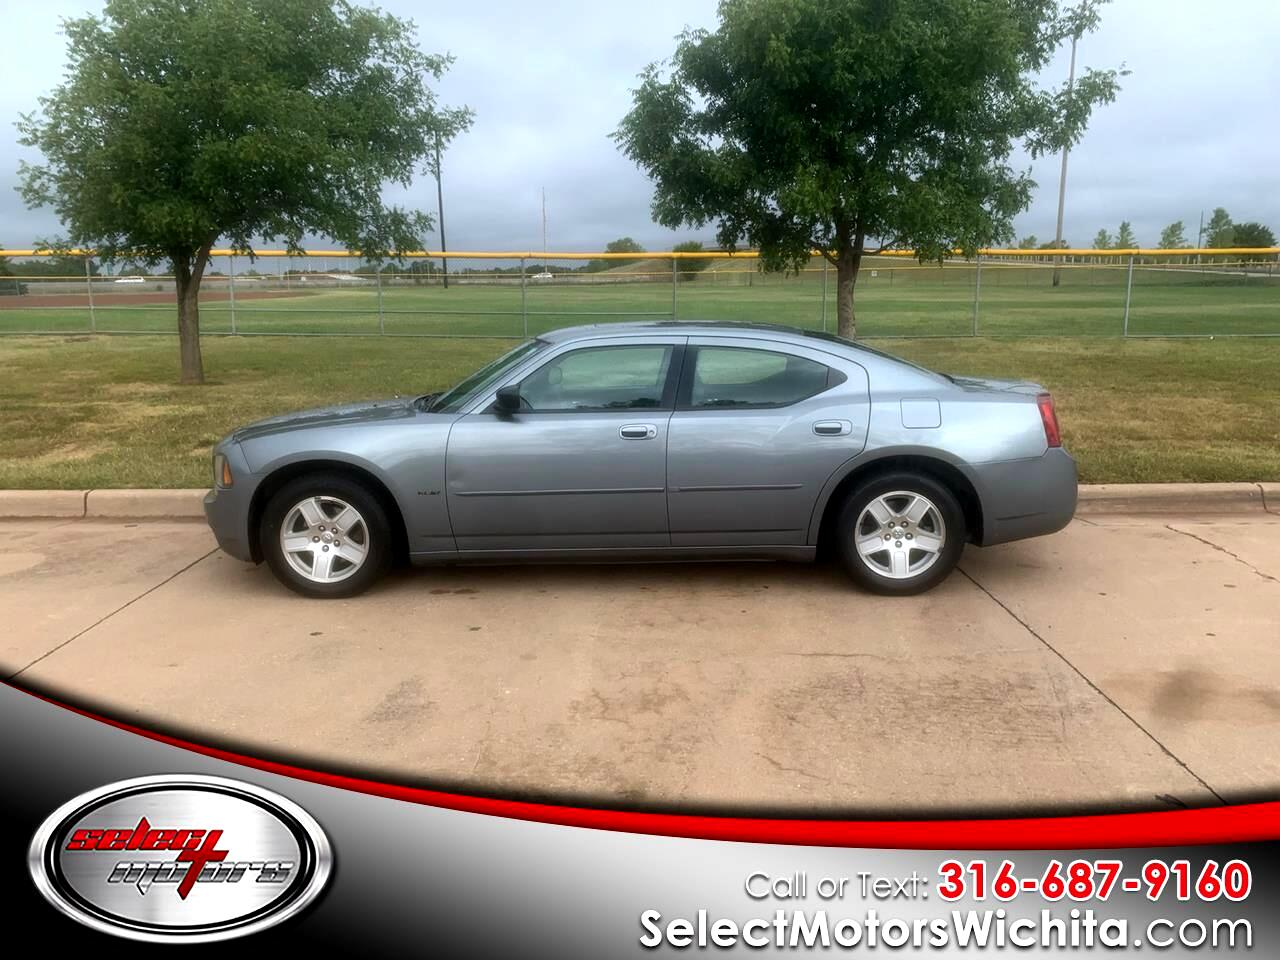 Dodge Charger 4dr Sdn RWD 2006